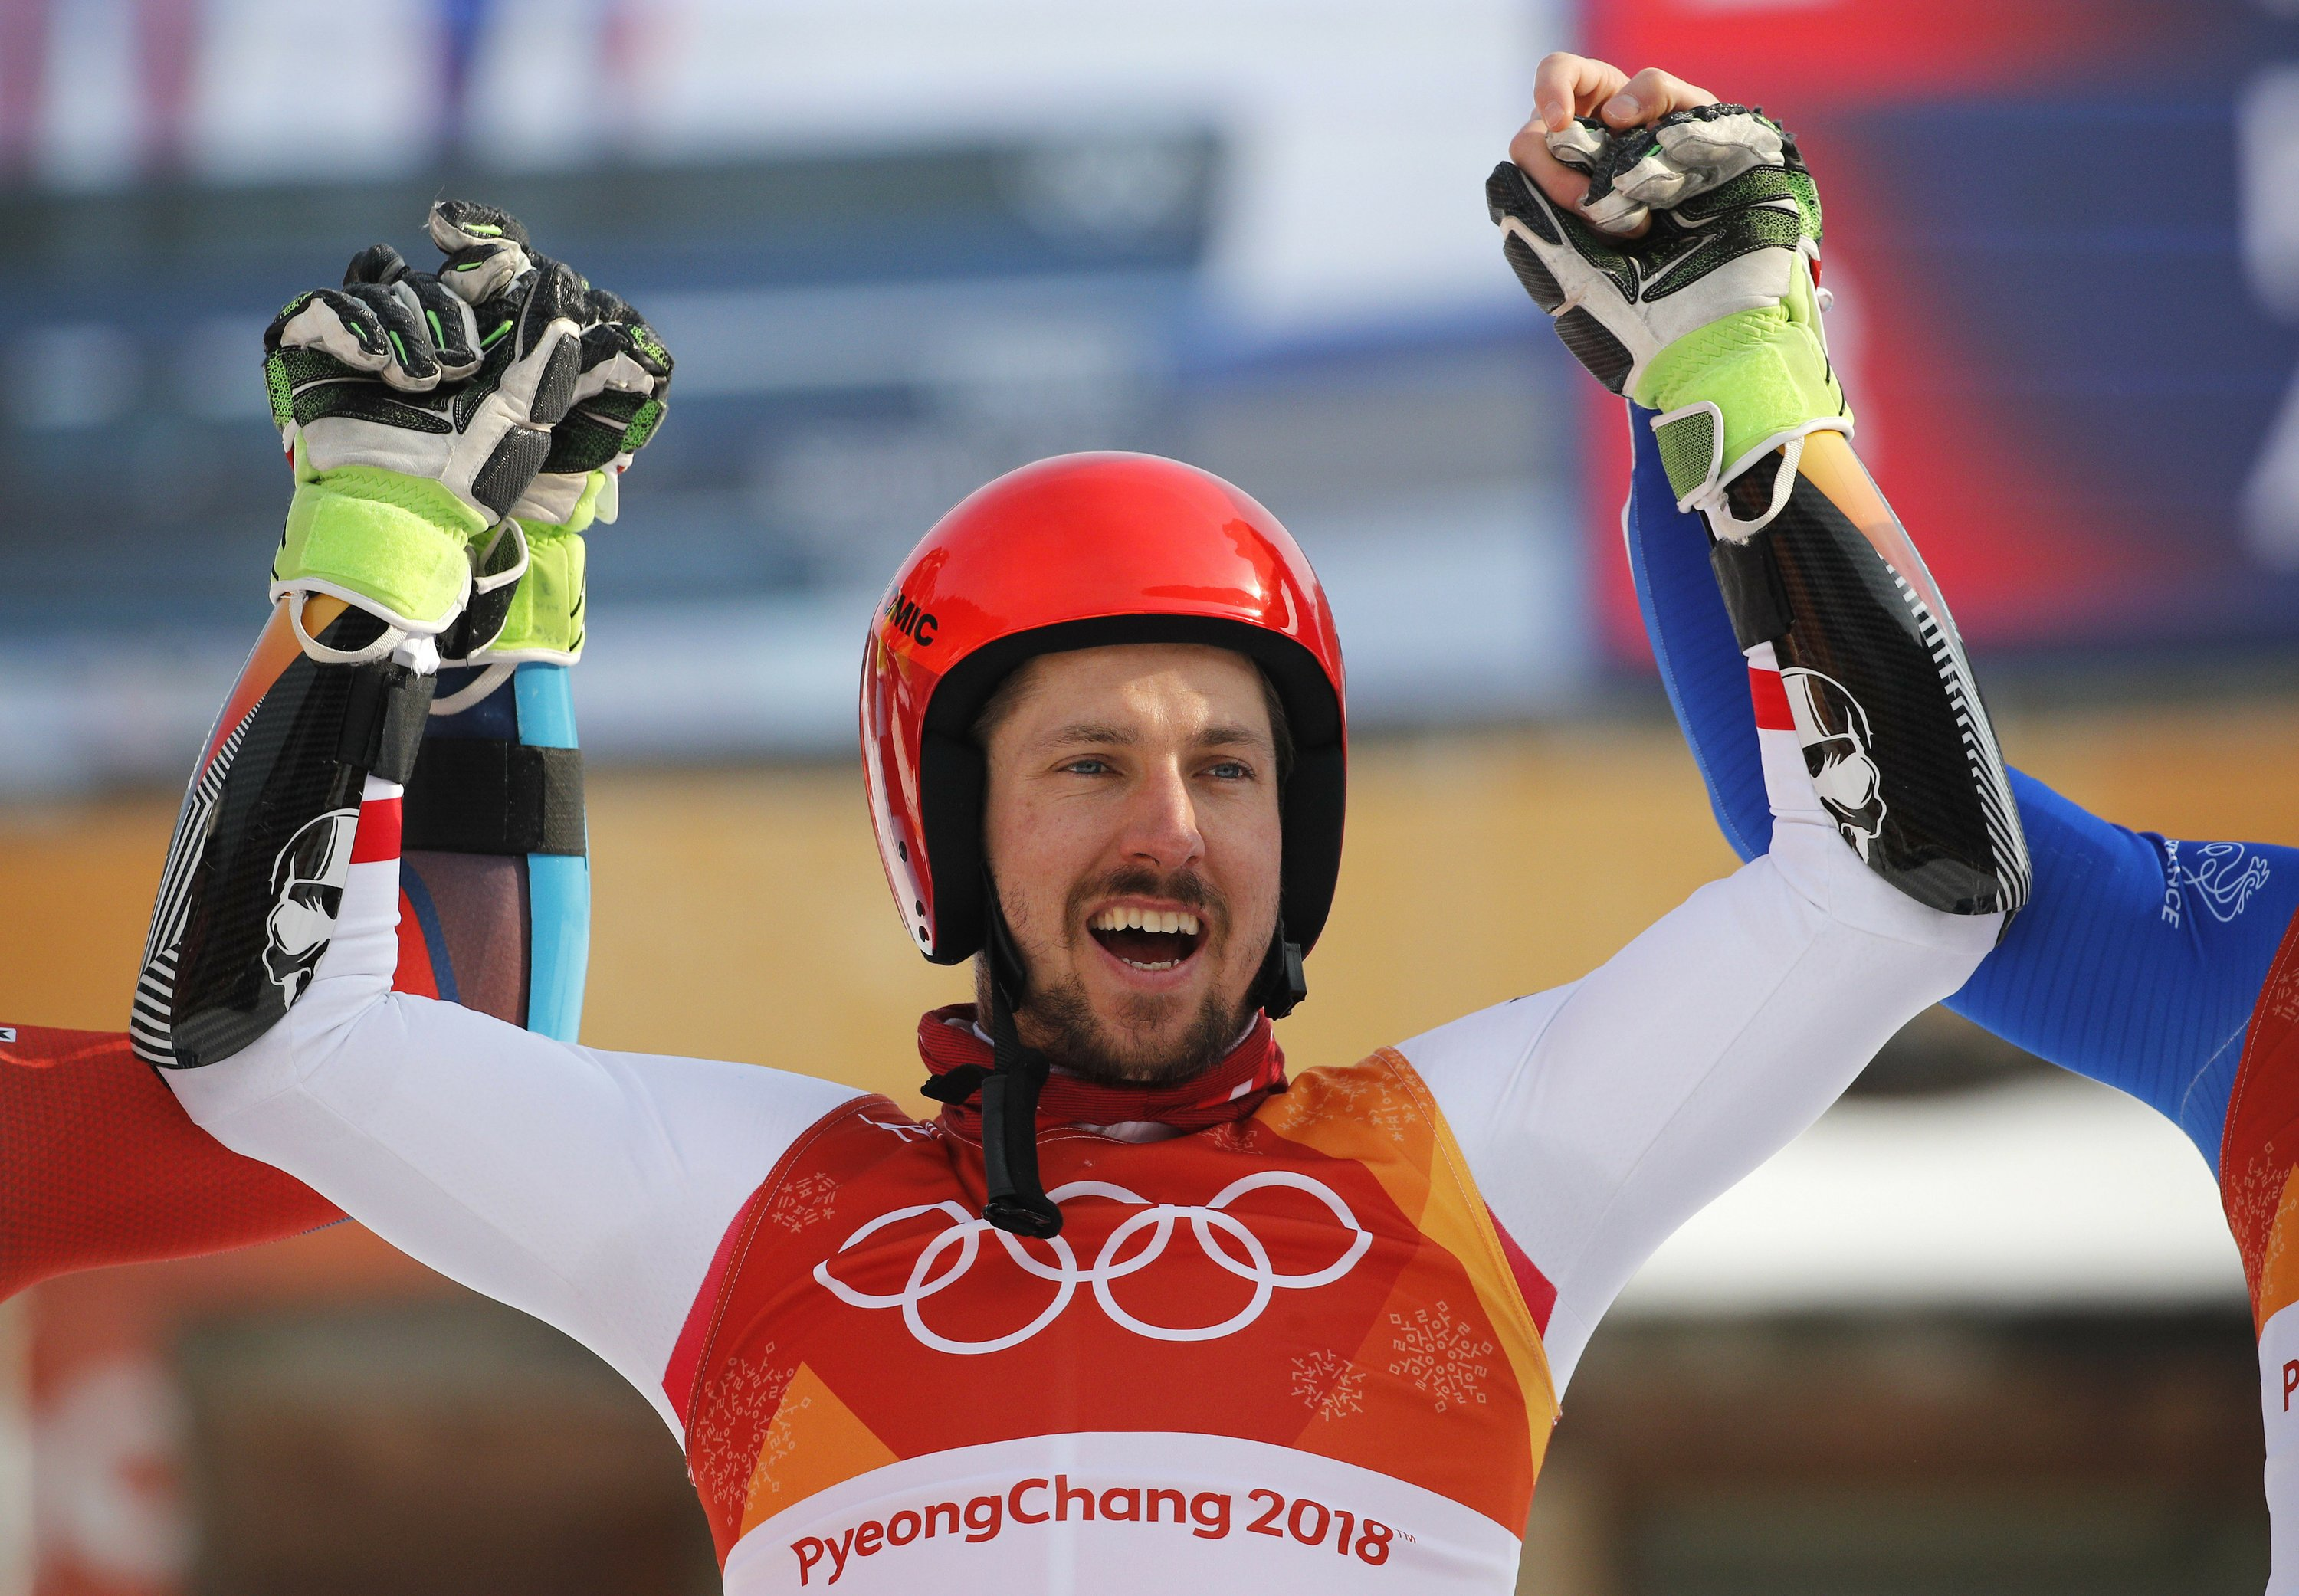 The Latest: Contrasting games doubles for Hirscher, Fourcade